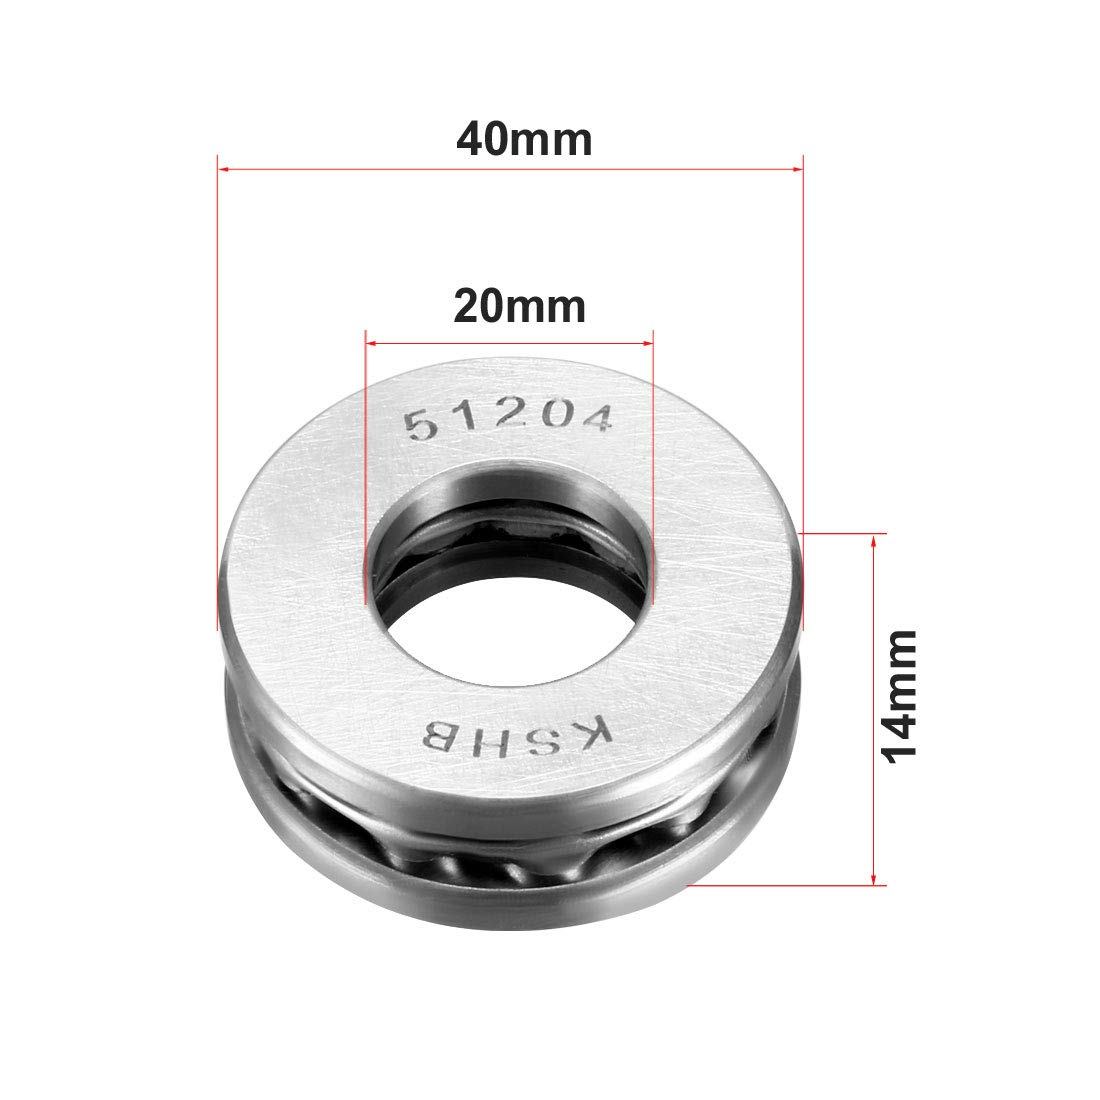 Pack of 2 sourcing map 51203 Single Direction Thrust Ball Bearings 17mm x 35mm x 12mm Chrome Steel